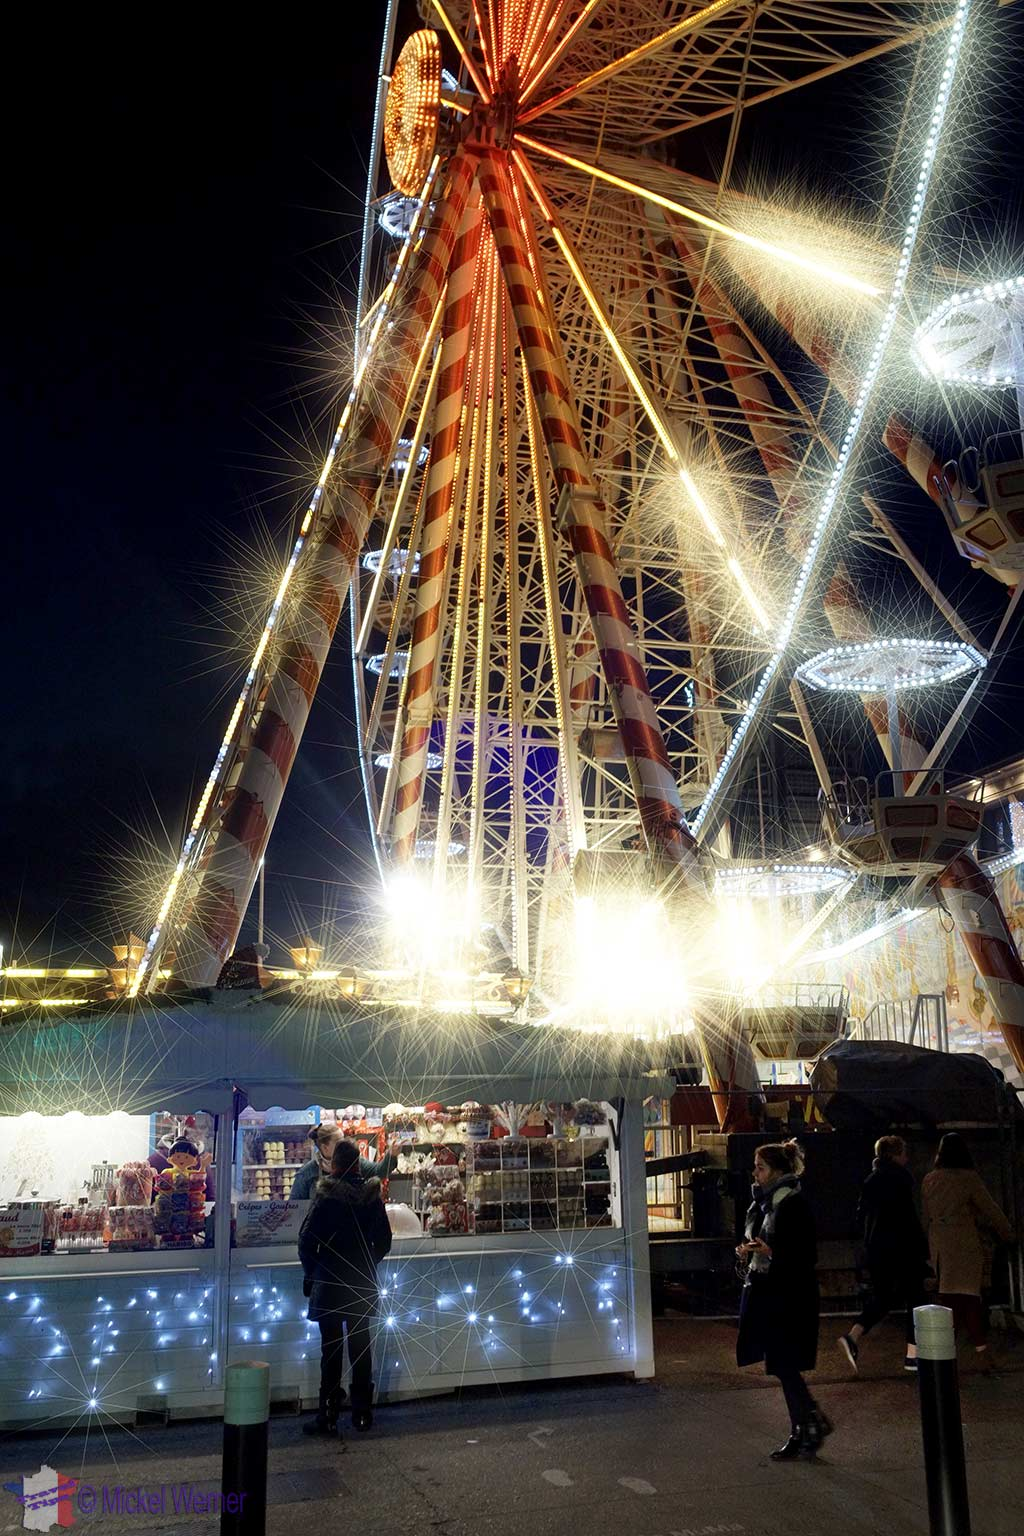 Ferris wheel and Christmas market huts in front of the Mairie of Le Havre, Normandy